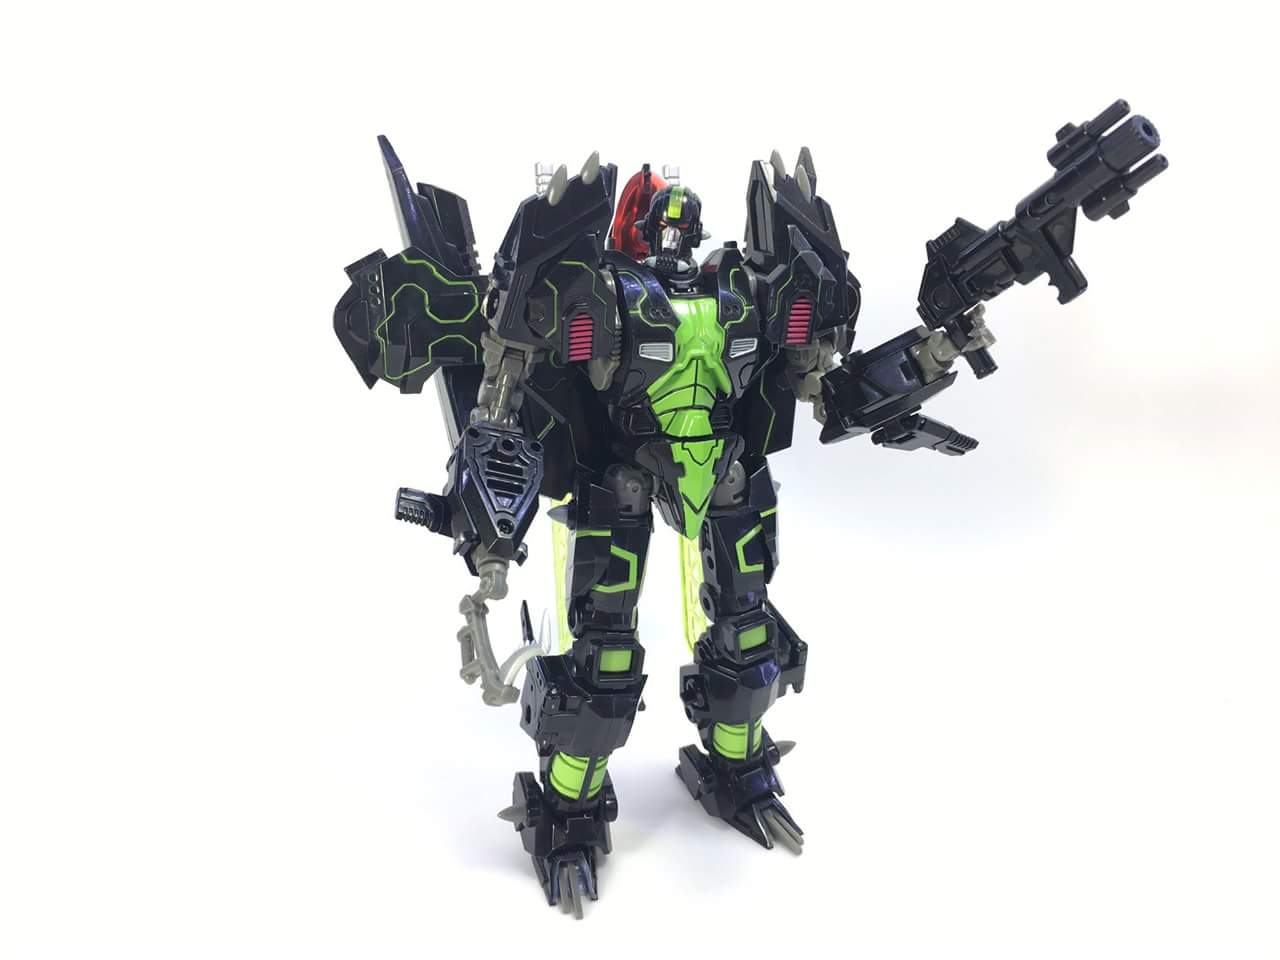 [Mastermind Creations] Produit Tiers - R-15 Jaegertron - aka Lockdown des BD IDW - Page 2 VxlIa6DQ